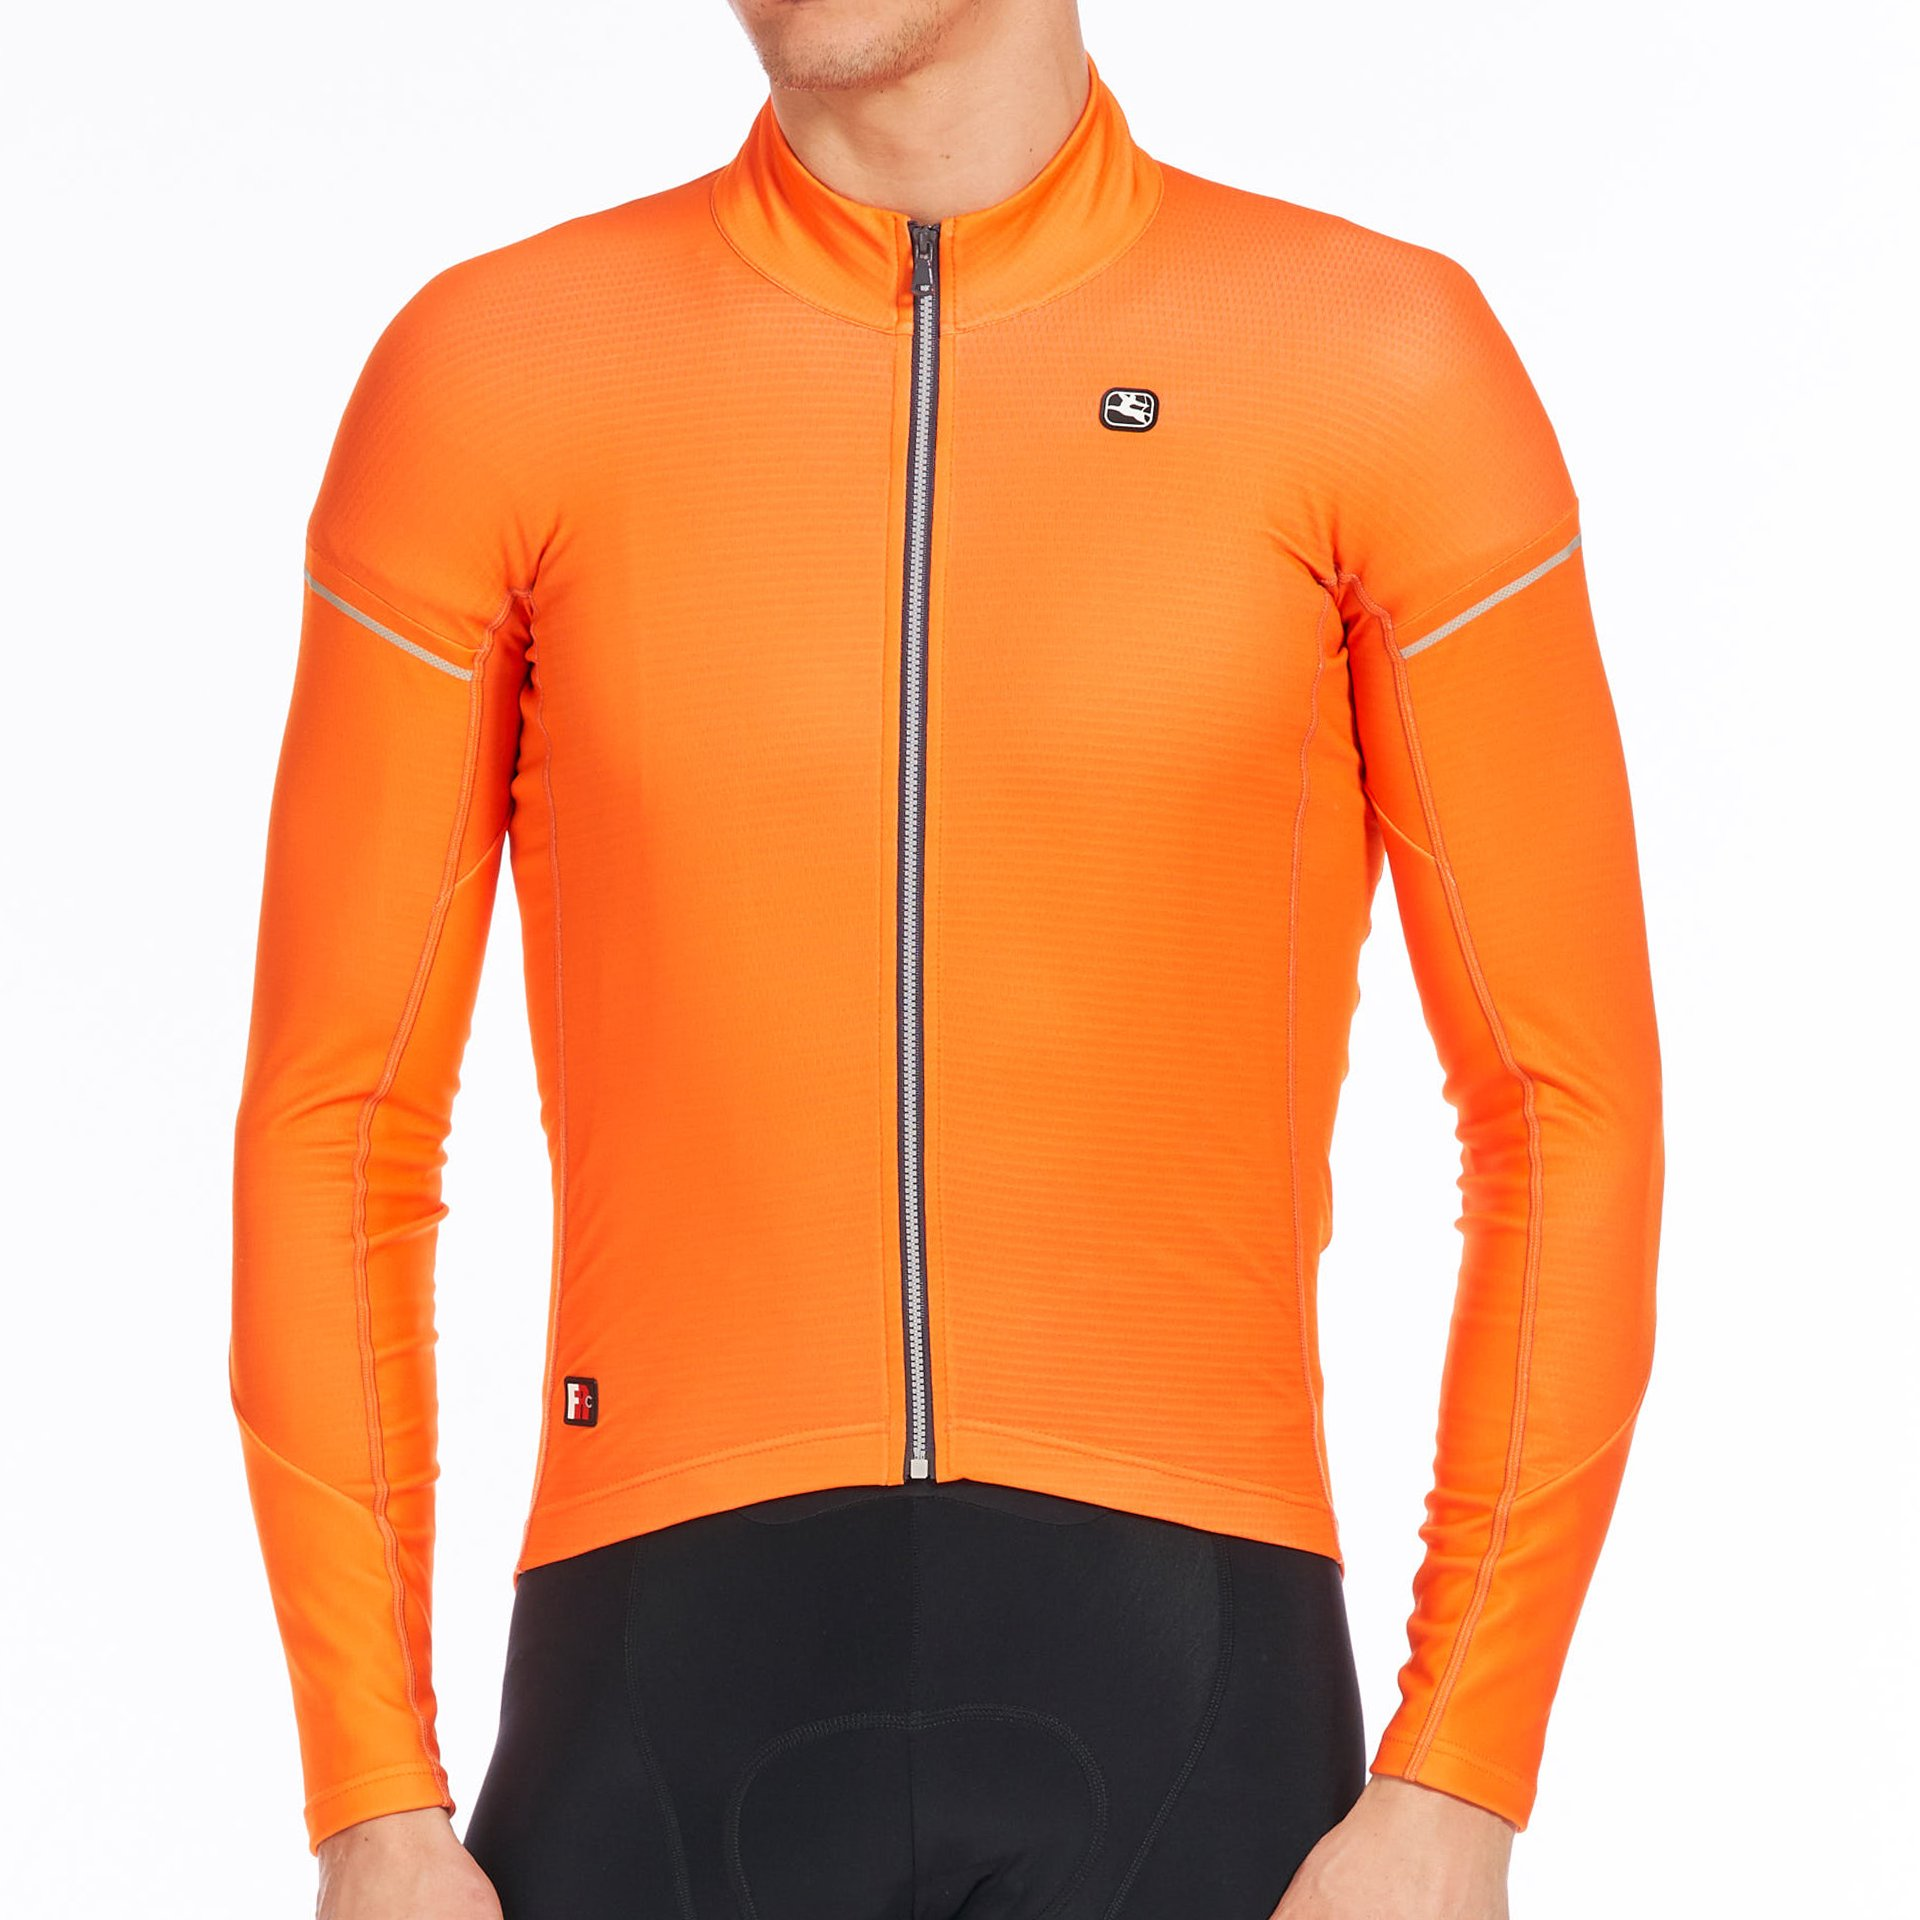 giordana-fr-c-pro-thermal-long-sleeve-jersey-orange-l